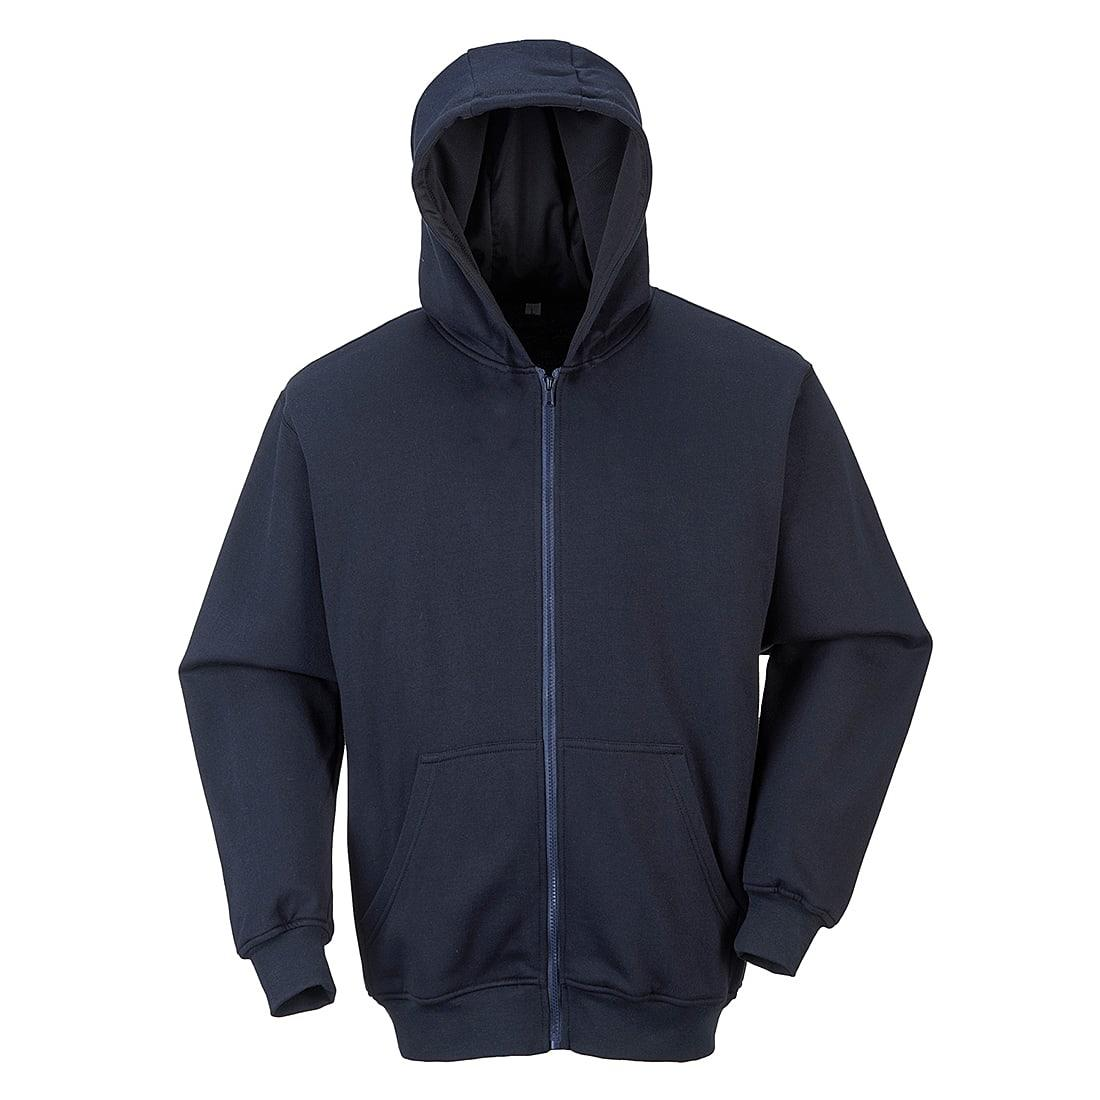 Portwest FR81 FR Zip Front Hoodie in Navy (Product Code: FR81)